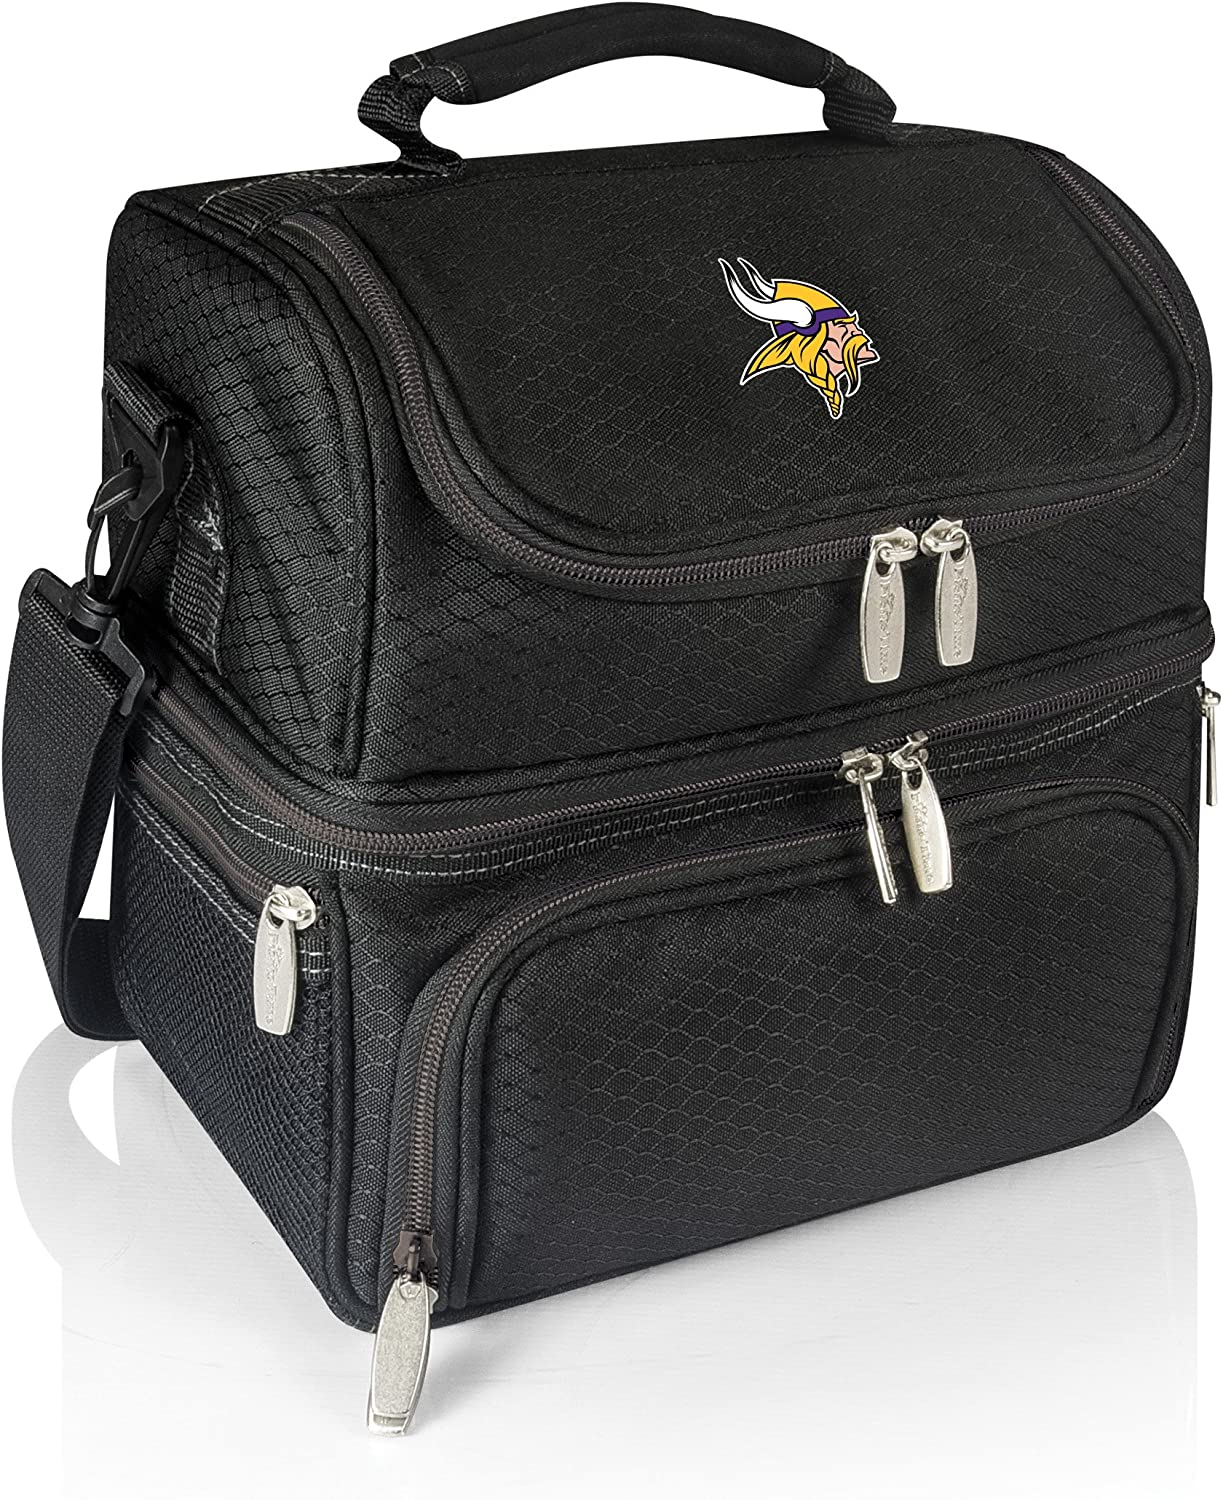 PICNIC TIME NFL Minnesota Vikings Pranzo Insulated Lunch Tote with Service for One, Black